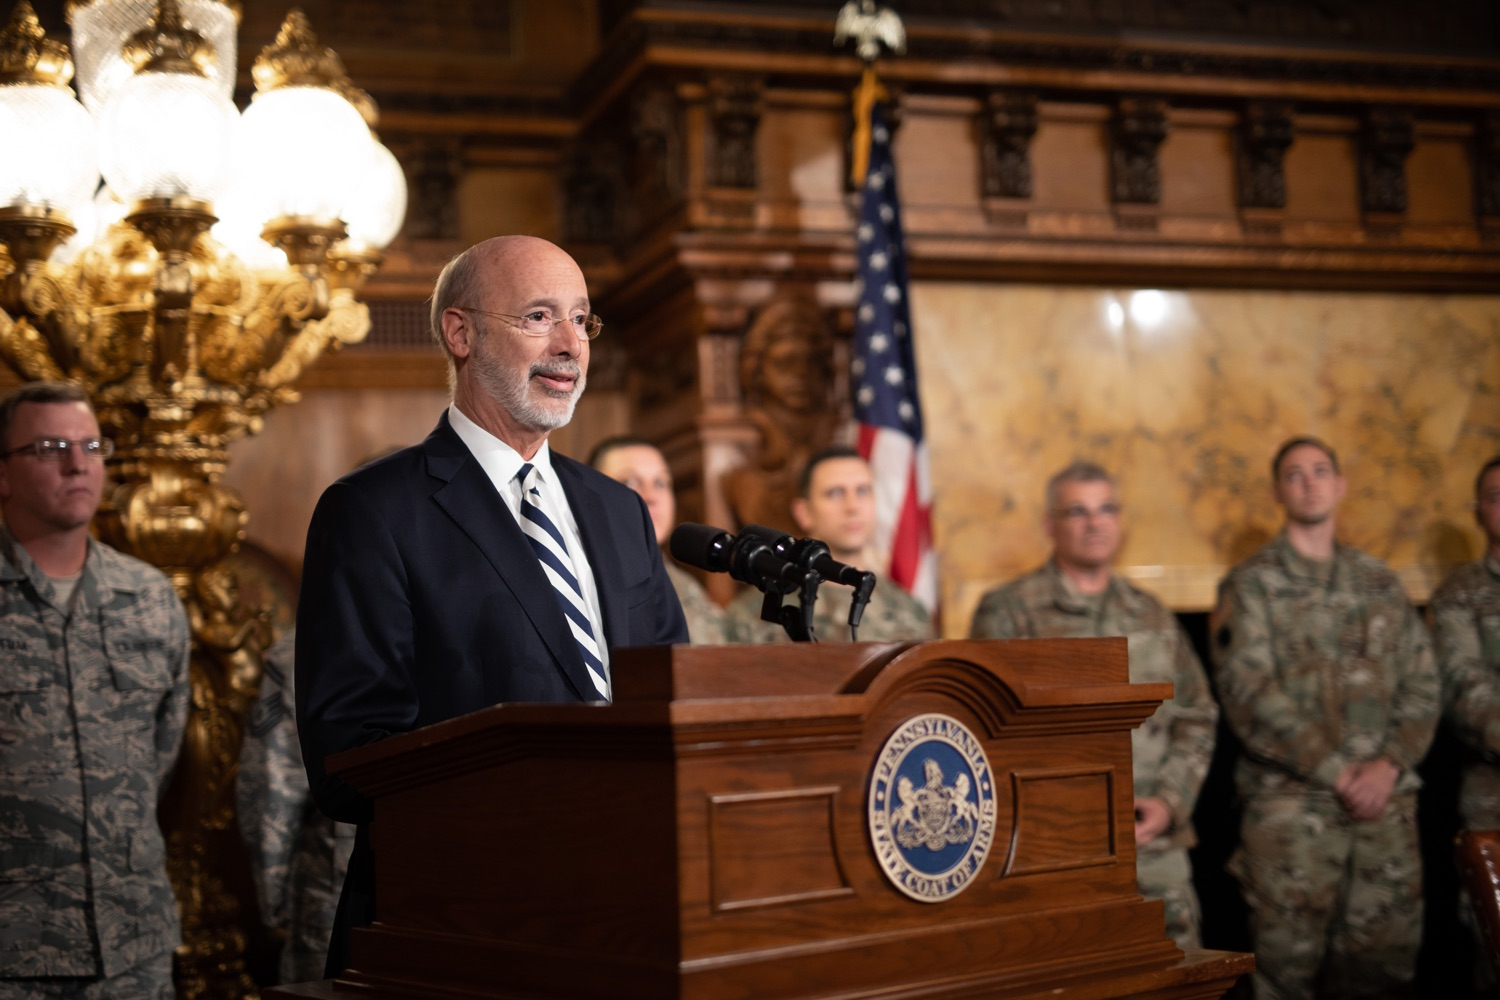 """<a href=""""http://filesource.abacast.com/commonwealthofpa/photo/17563_gov_giBill_dz_010.jpg"""" target=""""_blank"""">⇣Download Photo<br></a>Governor Tom Wolf speaking at the announcement. Governor Tom Wolf, joined by Pennsylvanias adjutant general and head of the Department of Military and Veterans Affairs Maj. Gen. Anthony Carelli, legislators and PA National Guard members and their families, encouraged PA National Guard members to take advantage of the new Military Family Education Program, or PA GI bill, now open for enrollment. Harrisburg, PA Monday, November 4 2019"""